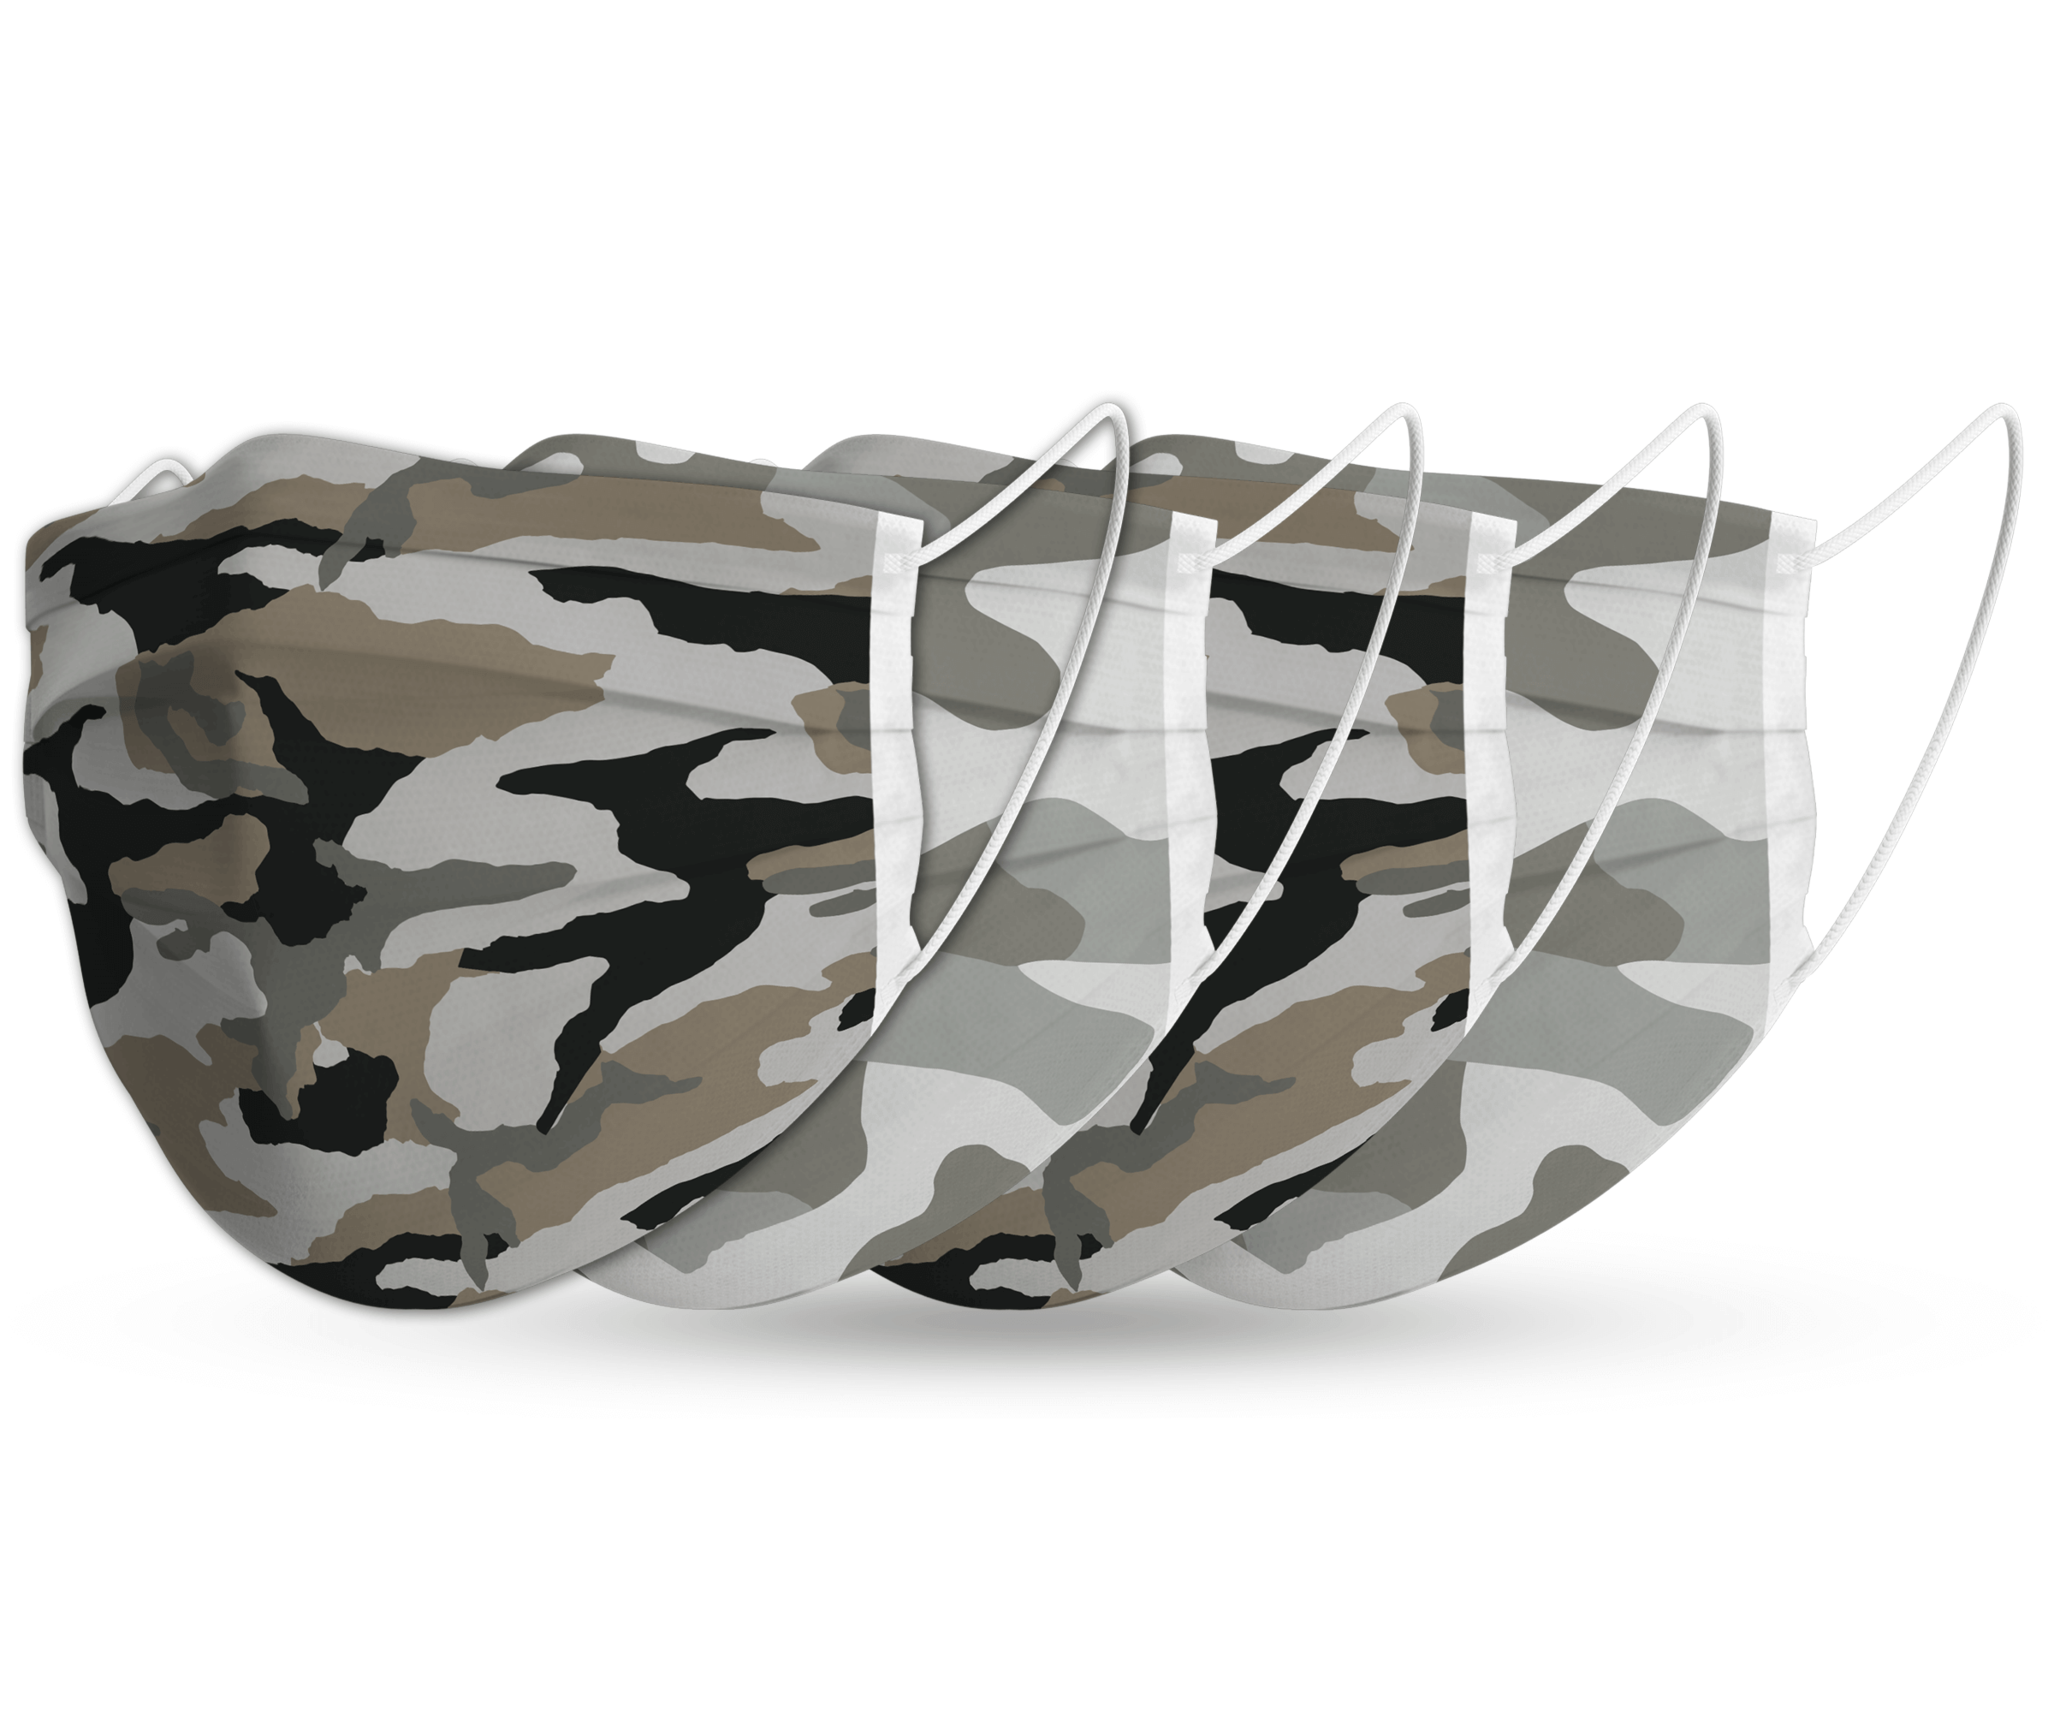 Topfanz Face mask camo set (4x)